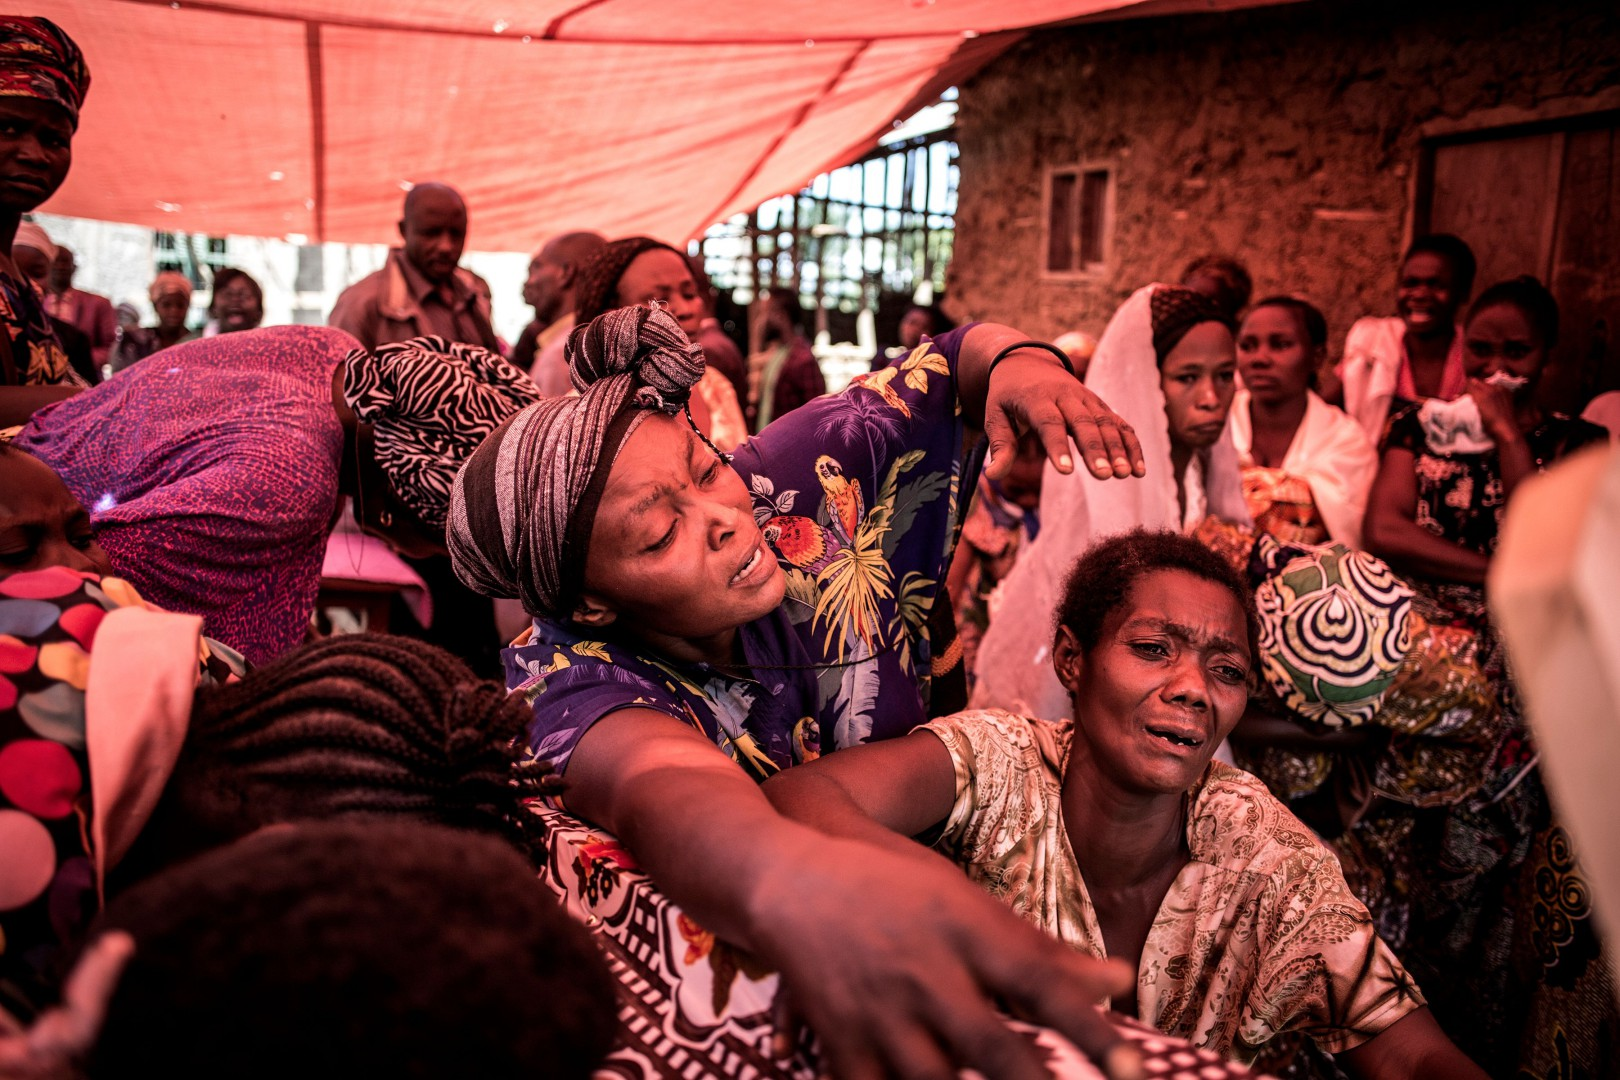 TOPSHOT - Family members of a woman killed in an alleged attack by the Ugandan Allied Democratic Forces(ADF) rebel group react as they see the coffin for the first time on November 12, 2018 in Beni. - Suspected Ugandan rebels killed six people, hacking one woman to death, and kidnapped five others -- mostly children -- in the Democratic Republic of Congo's restive east, officials said on November 11. Officials blamed the two attacks in Beni near the country's border with Uganda on the Ugandan Allied Democratic Forces (ADF), one of several armed movements operating in the region. (Photo by John WESSELS / AFP)